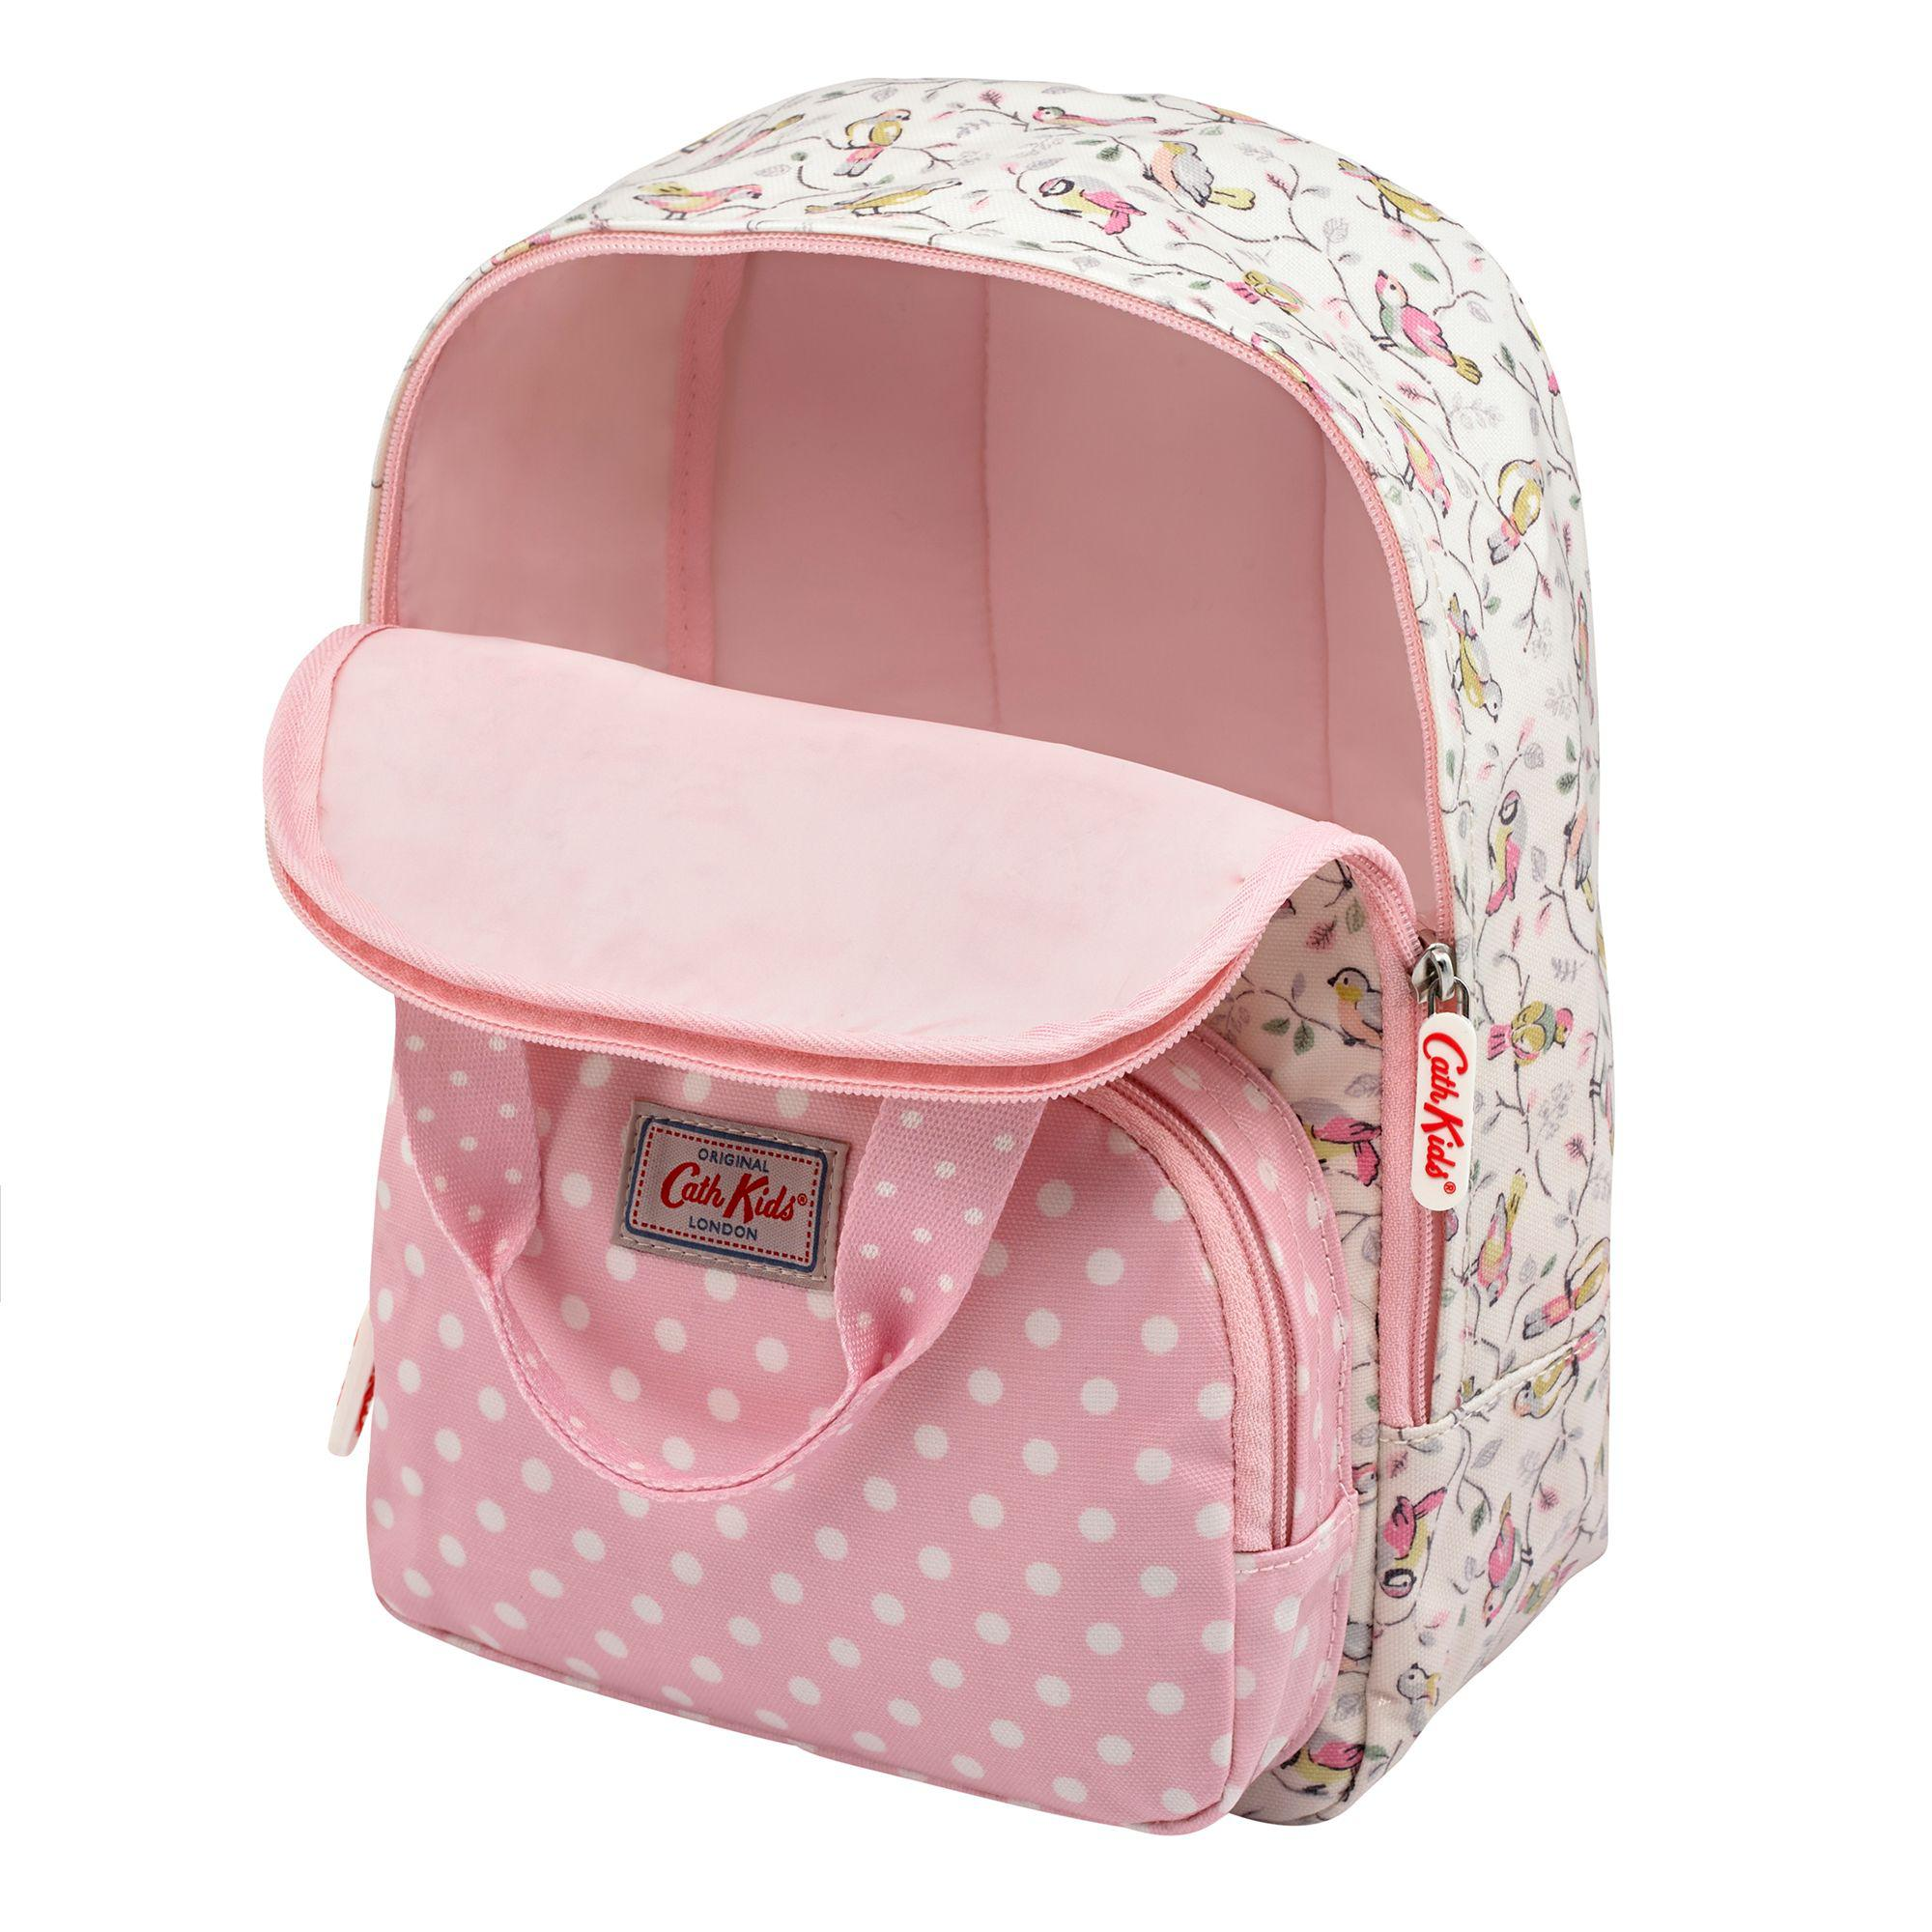 excellent quality buying new search for best Cath Kids Children's Little Birds Medium Backpack